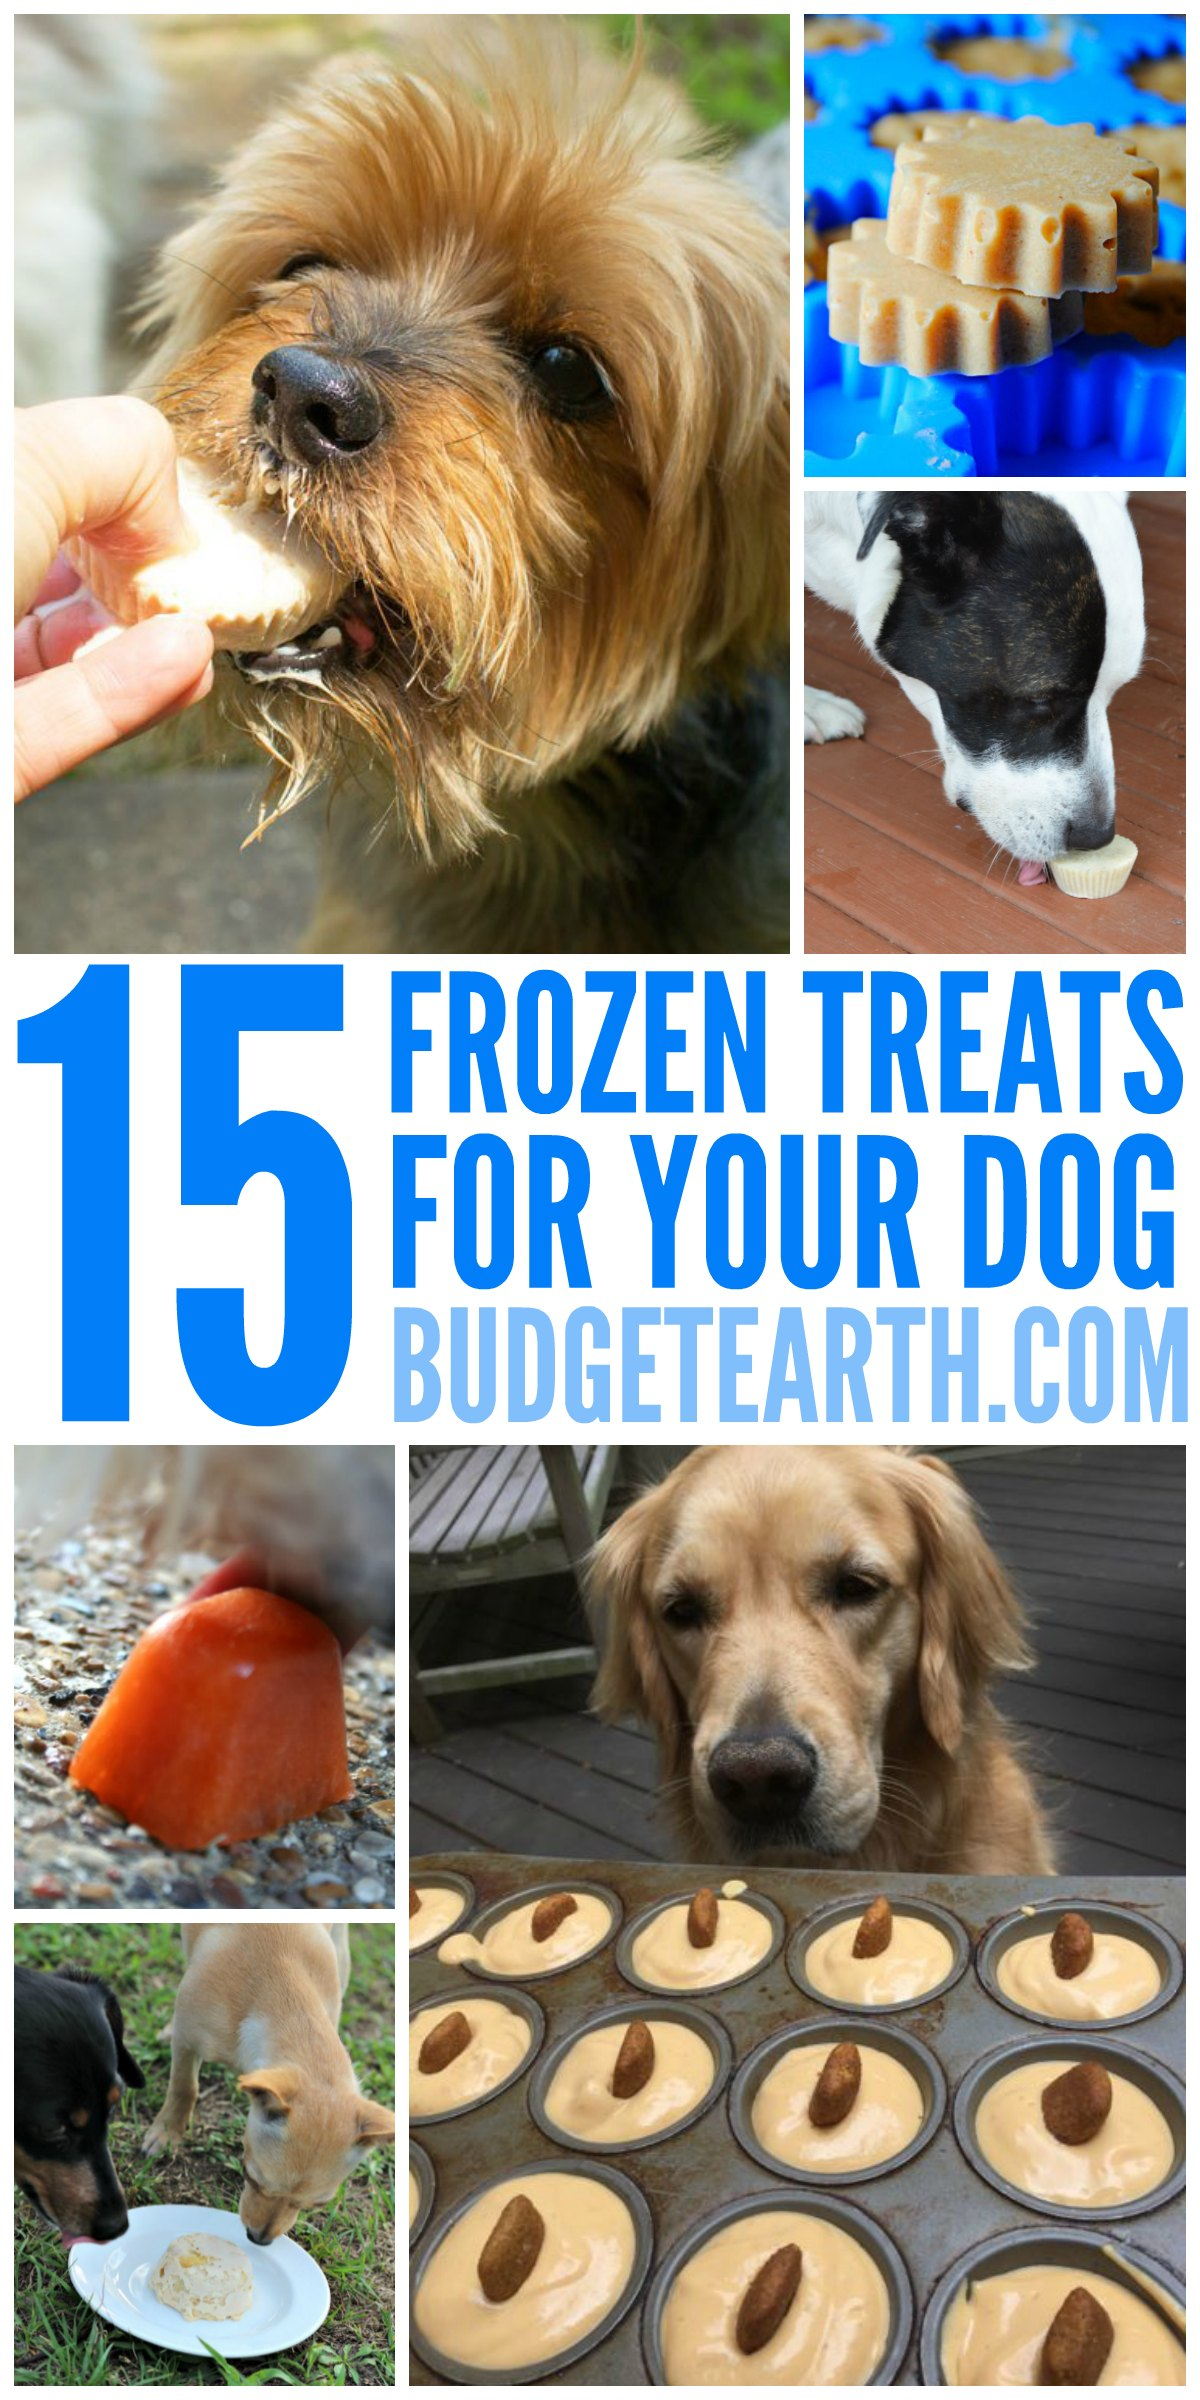 Looking for some delicious summer treats for your dog? Check out these 15 Frozen Treat Recipes for dogs here!